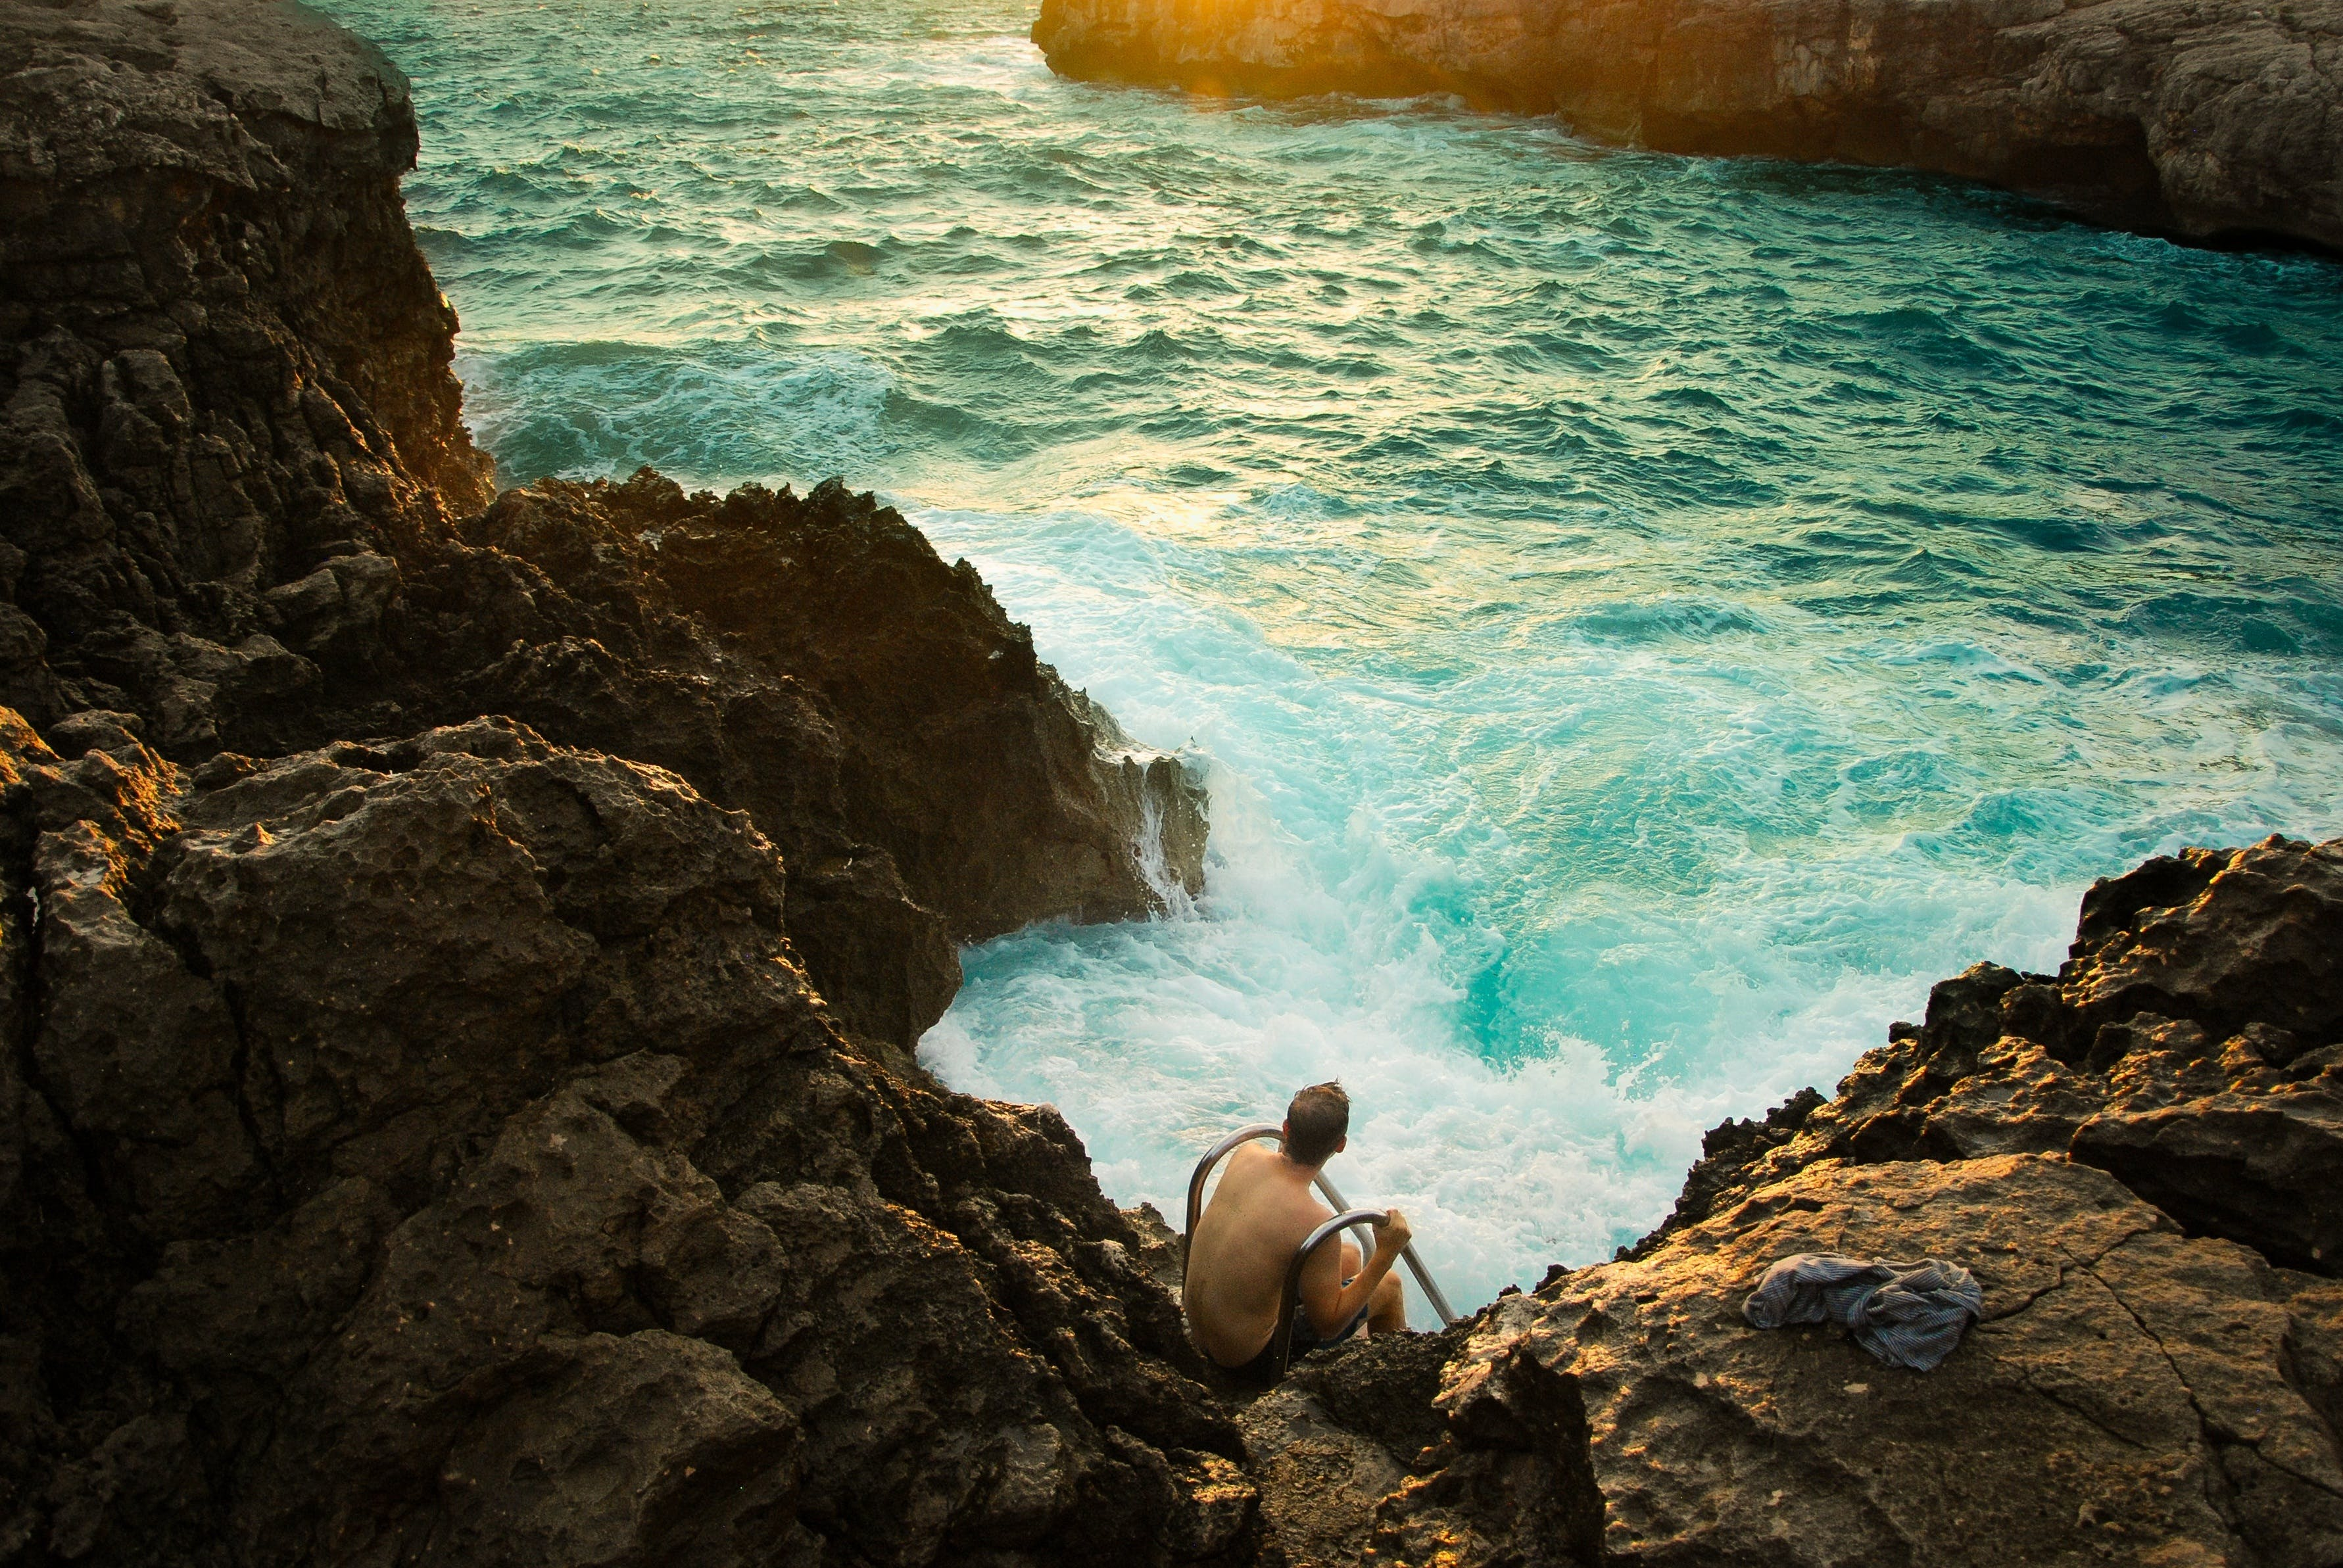 Free stock photo of boiling surf, ocean, outdoor, rocky shore